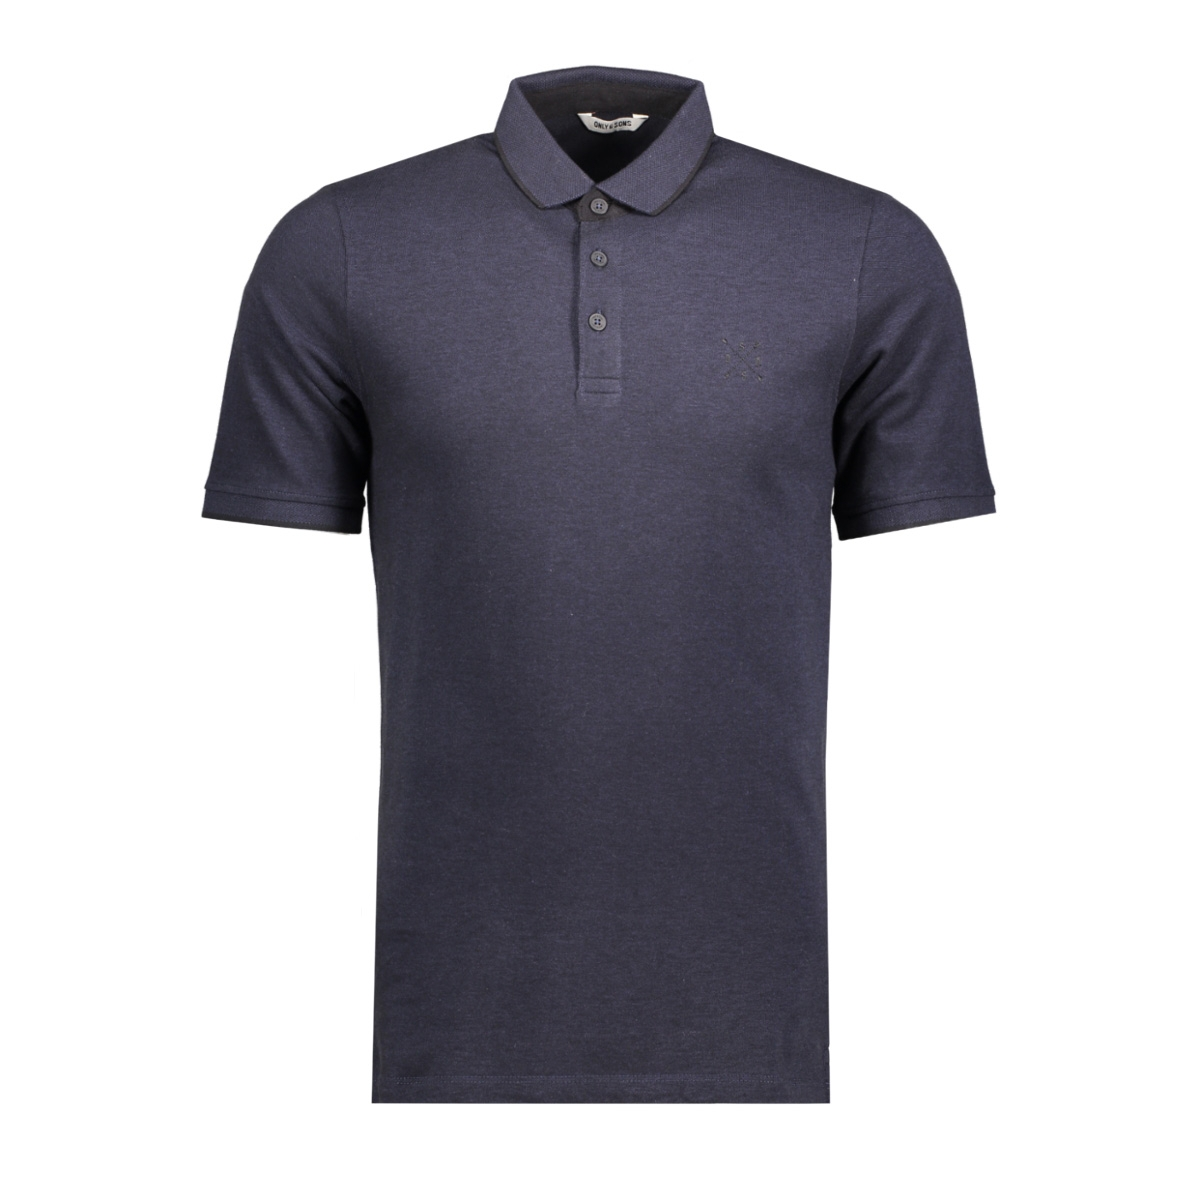 onsstan ss fitted polo tee noos 22006560 only & sons polo dress blues/black contrast